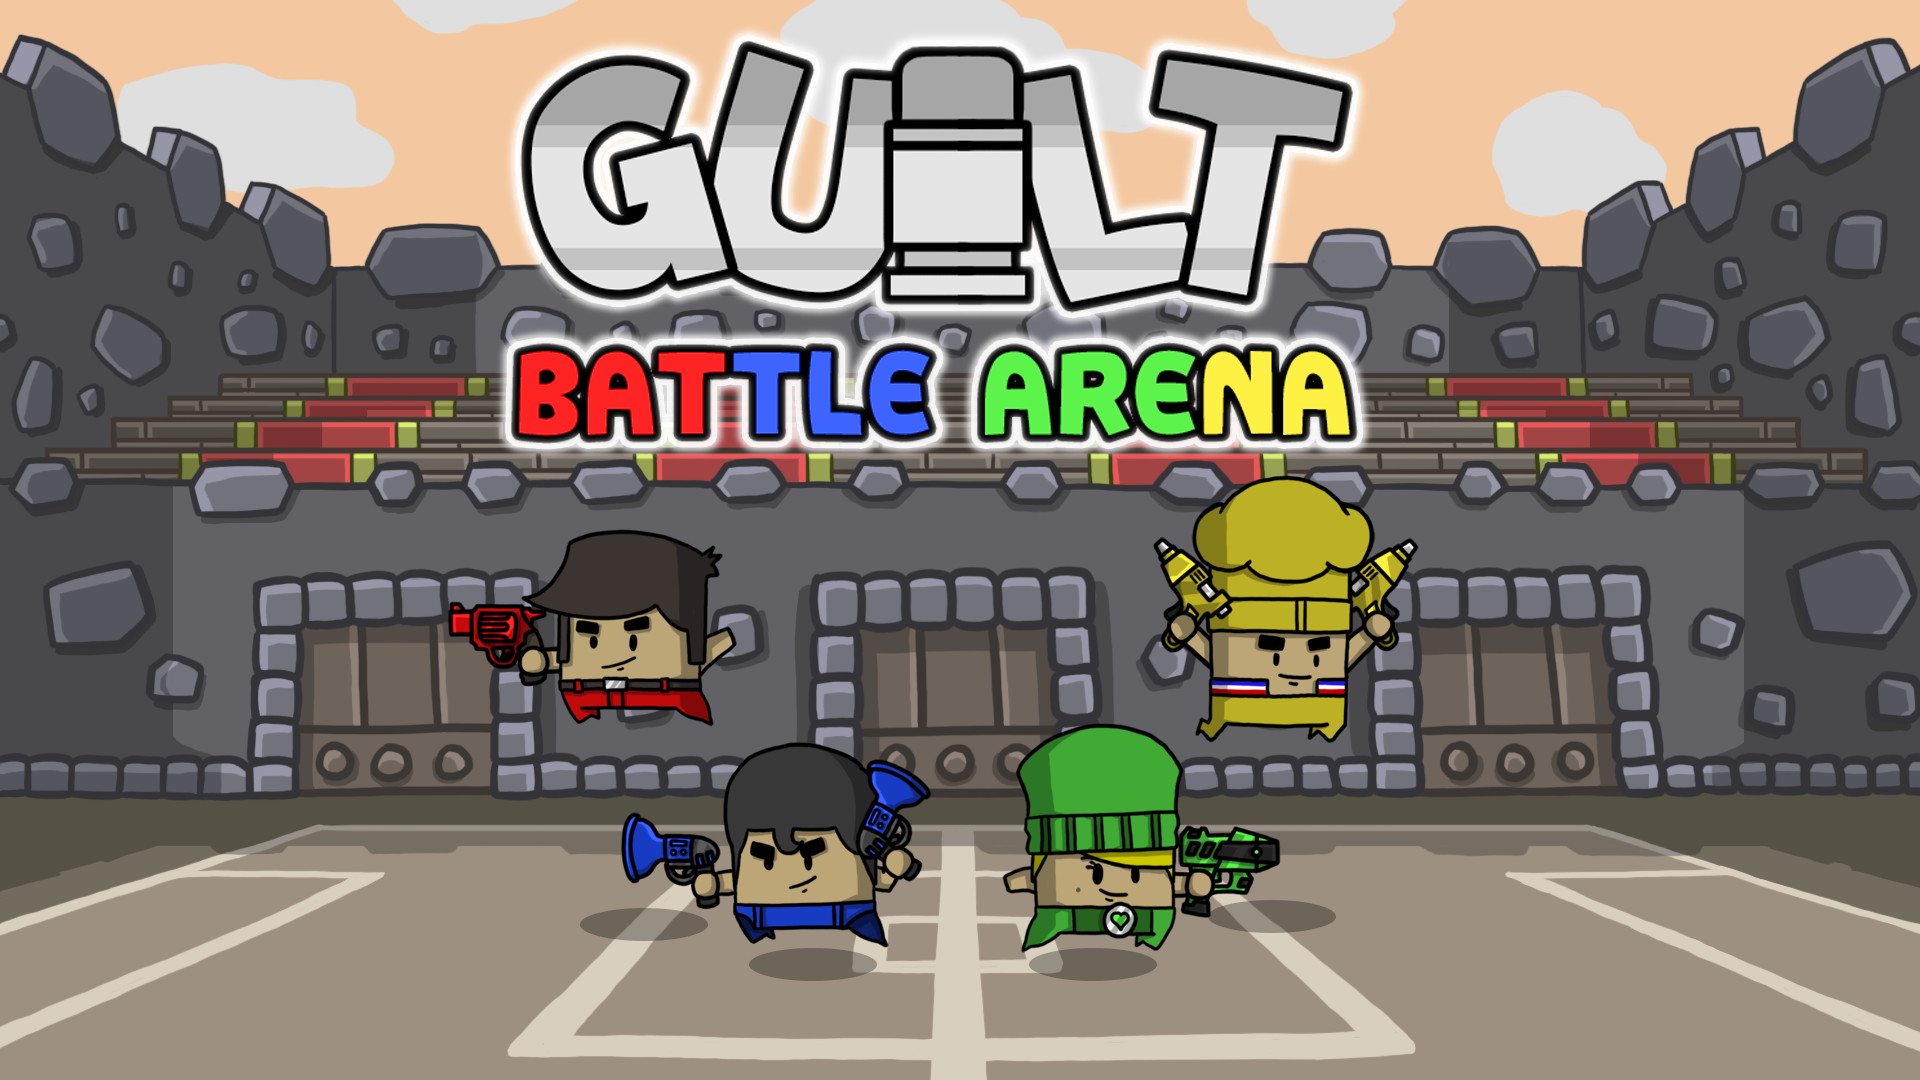 guilt battle arena review